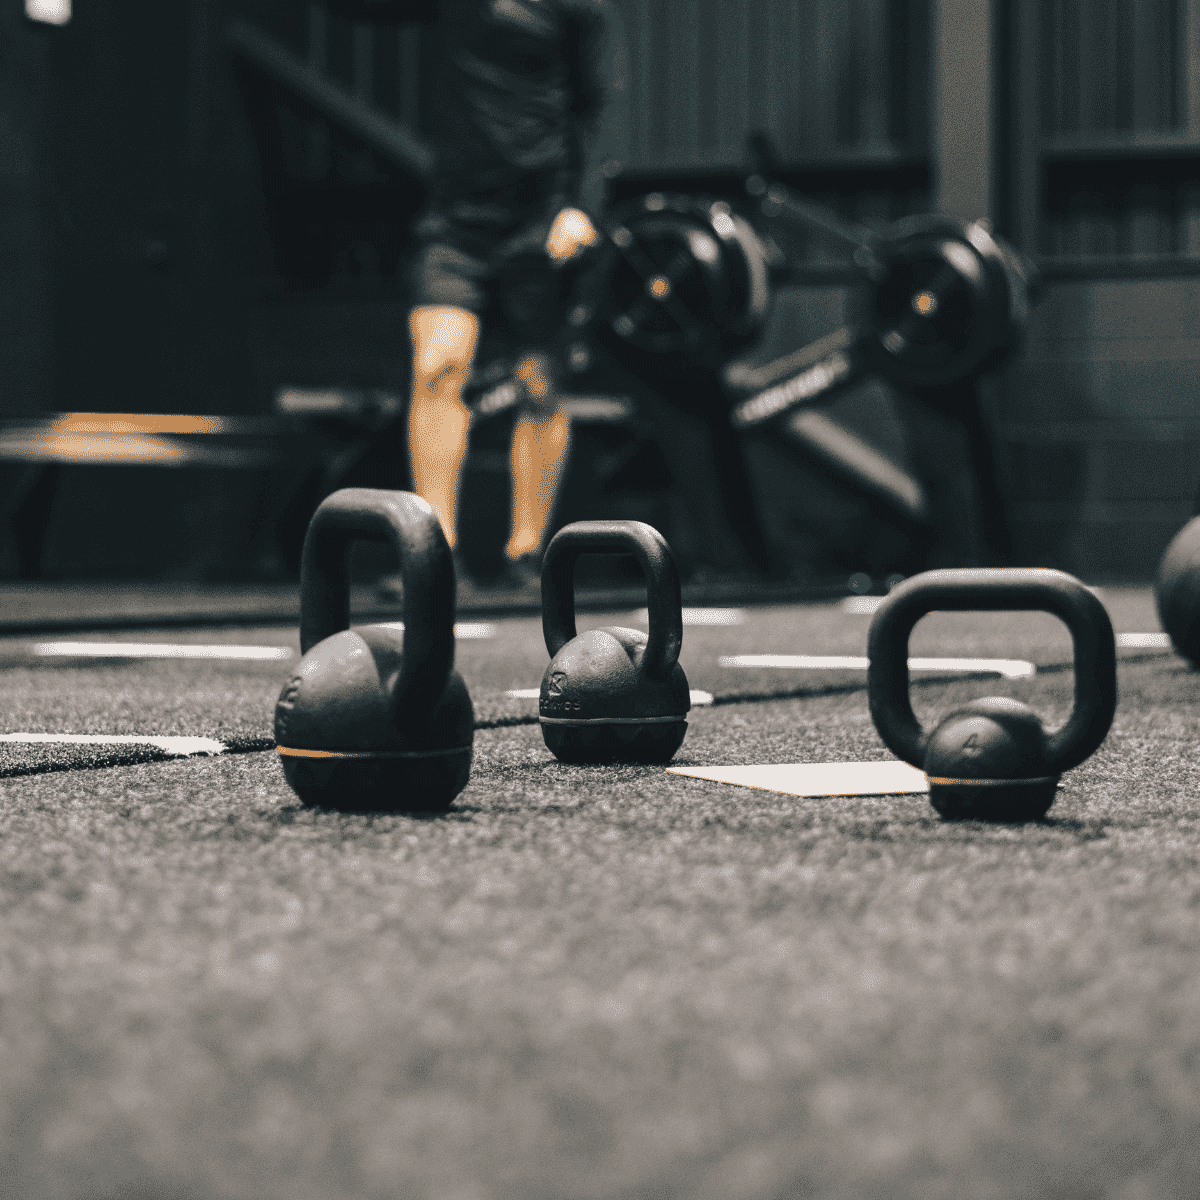 5 Reasons Why Fitness Needs to be Personalized